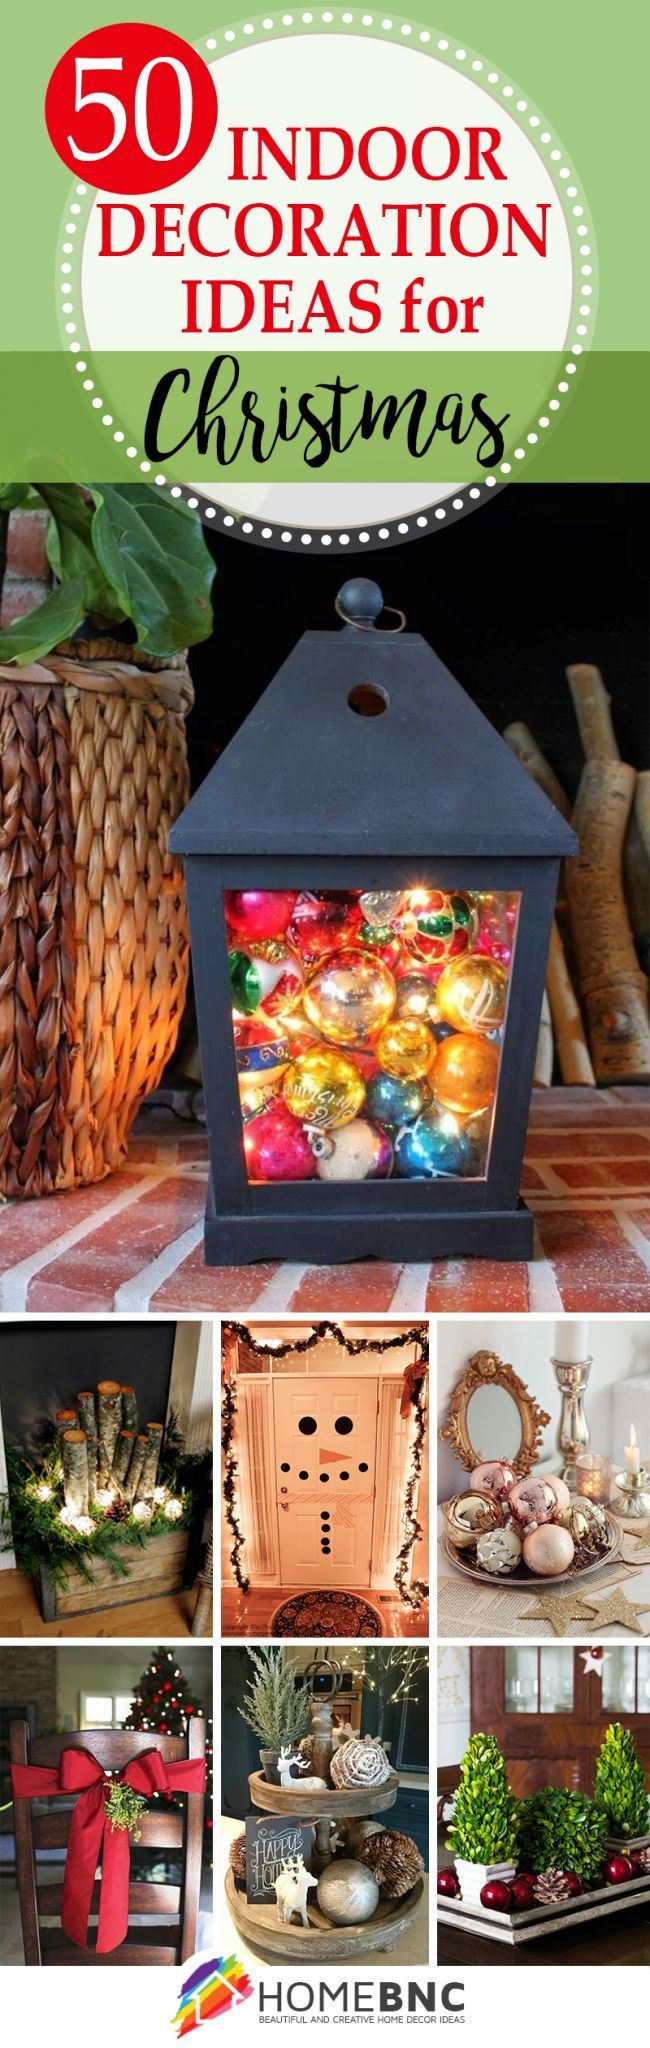 Indoor christmas table decorations - Best 25 Indoor Christmas Decorations Ideas On Pinterest Kitchen Xmas Decorations Easy Christmas Decorations And Diy Christmas Indoor Decorations